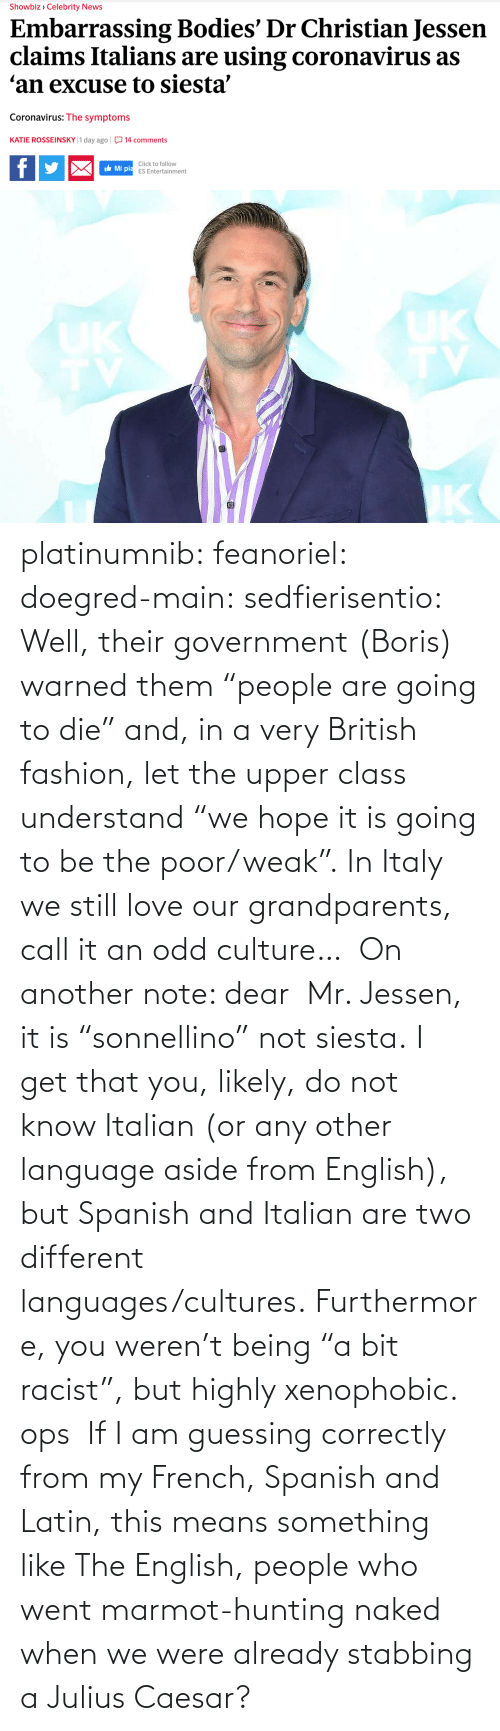 "French: platinumnib:  feanoriel: doegred-main:  sedfierisentio:  Well, their government (Boris) warned them ""people are going to die"" and, in a very British fashion, let the upper class understand ""we hope it is going to be the poor/weak"". In Italy we still love our grandparents, call it an odd culture…  On another note: dear  Mr. Jessen, it is ""sonnellino"" not siesta. I get that you, likely, do not know Italian (or any other language aside from English), but Spanish and Italian are two different languages/cultures. Furthermore, you weren't being ""a bit racist"", but highly xenophobic.   ops   If I am guessing correctly from my French, Spanish and Latin, this means something like The English, people who went marmot-hunting naked when we were already stabbing a Julius Caesar?"